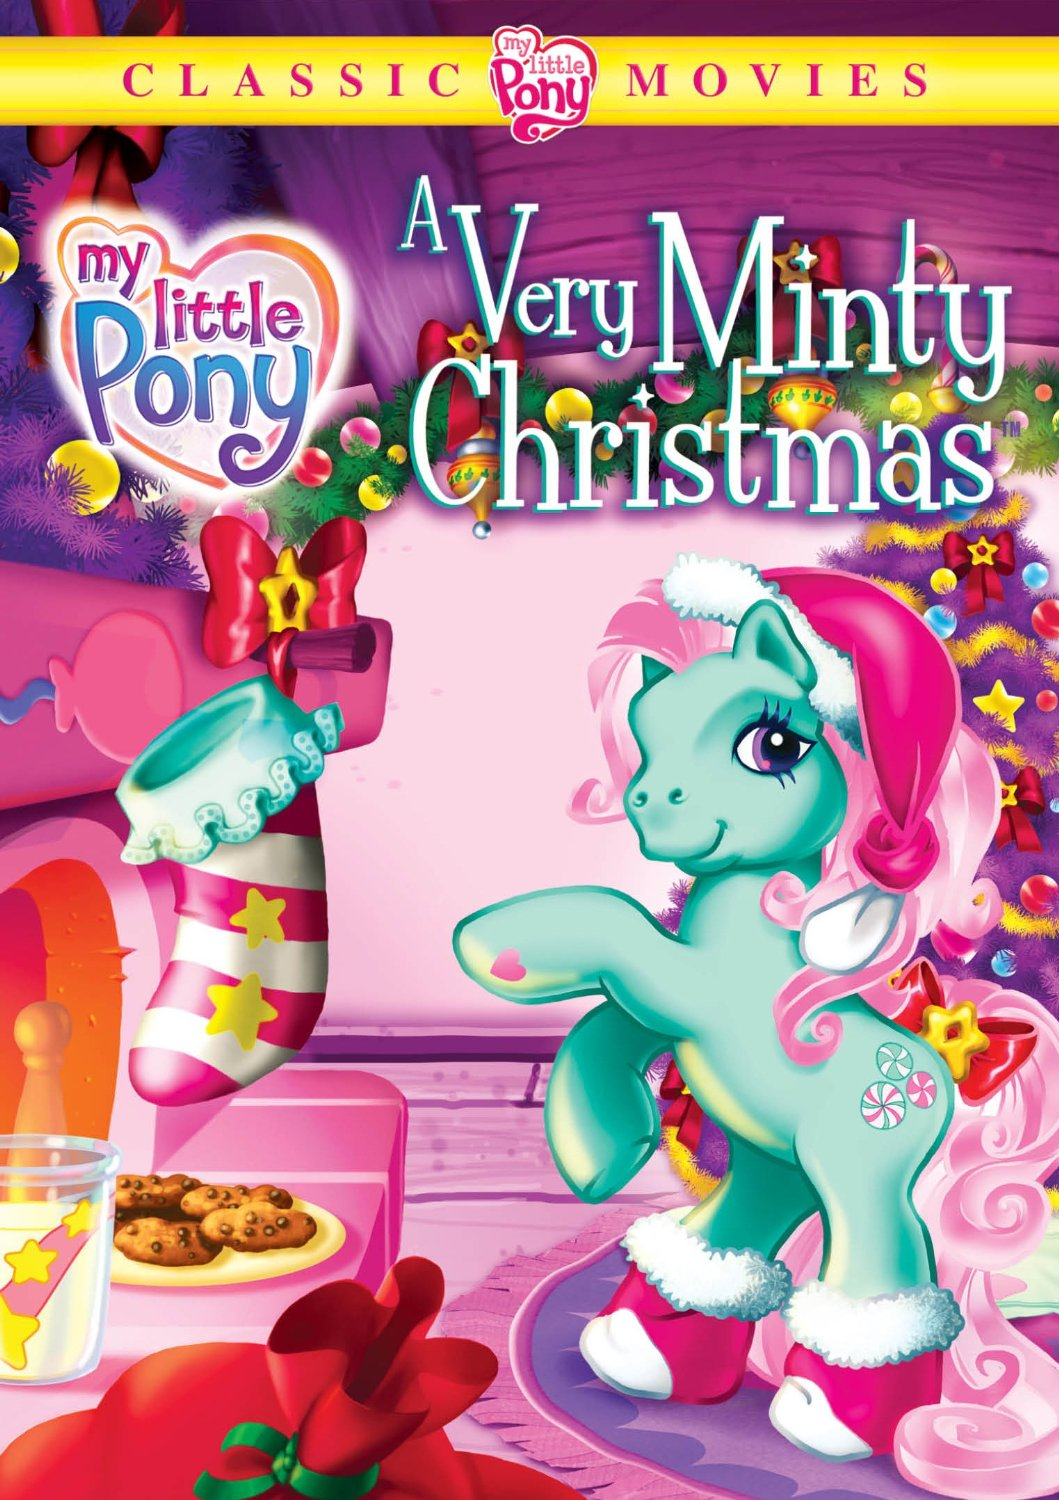 My Little Pony: A Very Minty Christmas (2005) Short